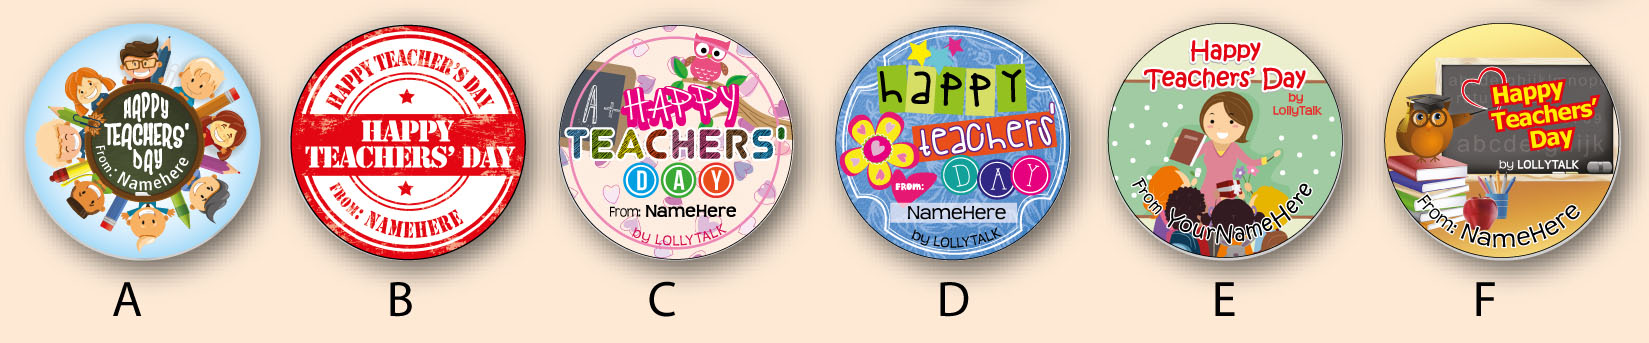 Teachers Day Labels 2016